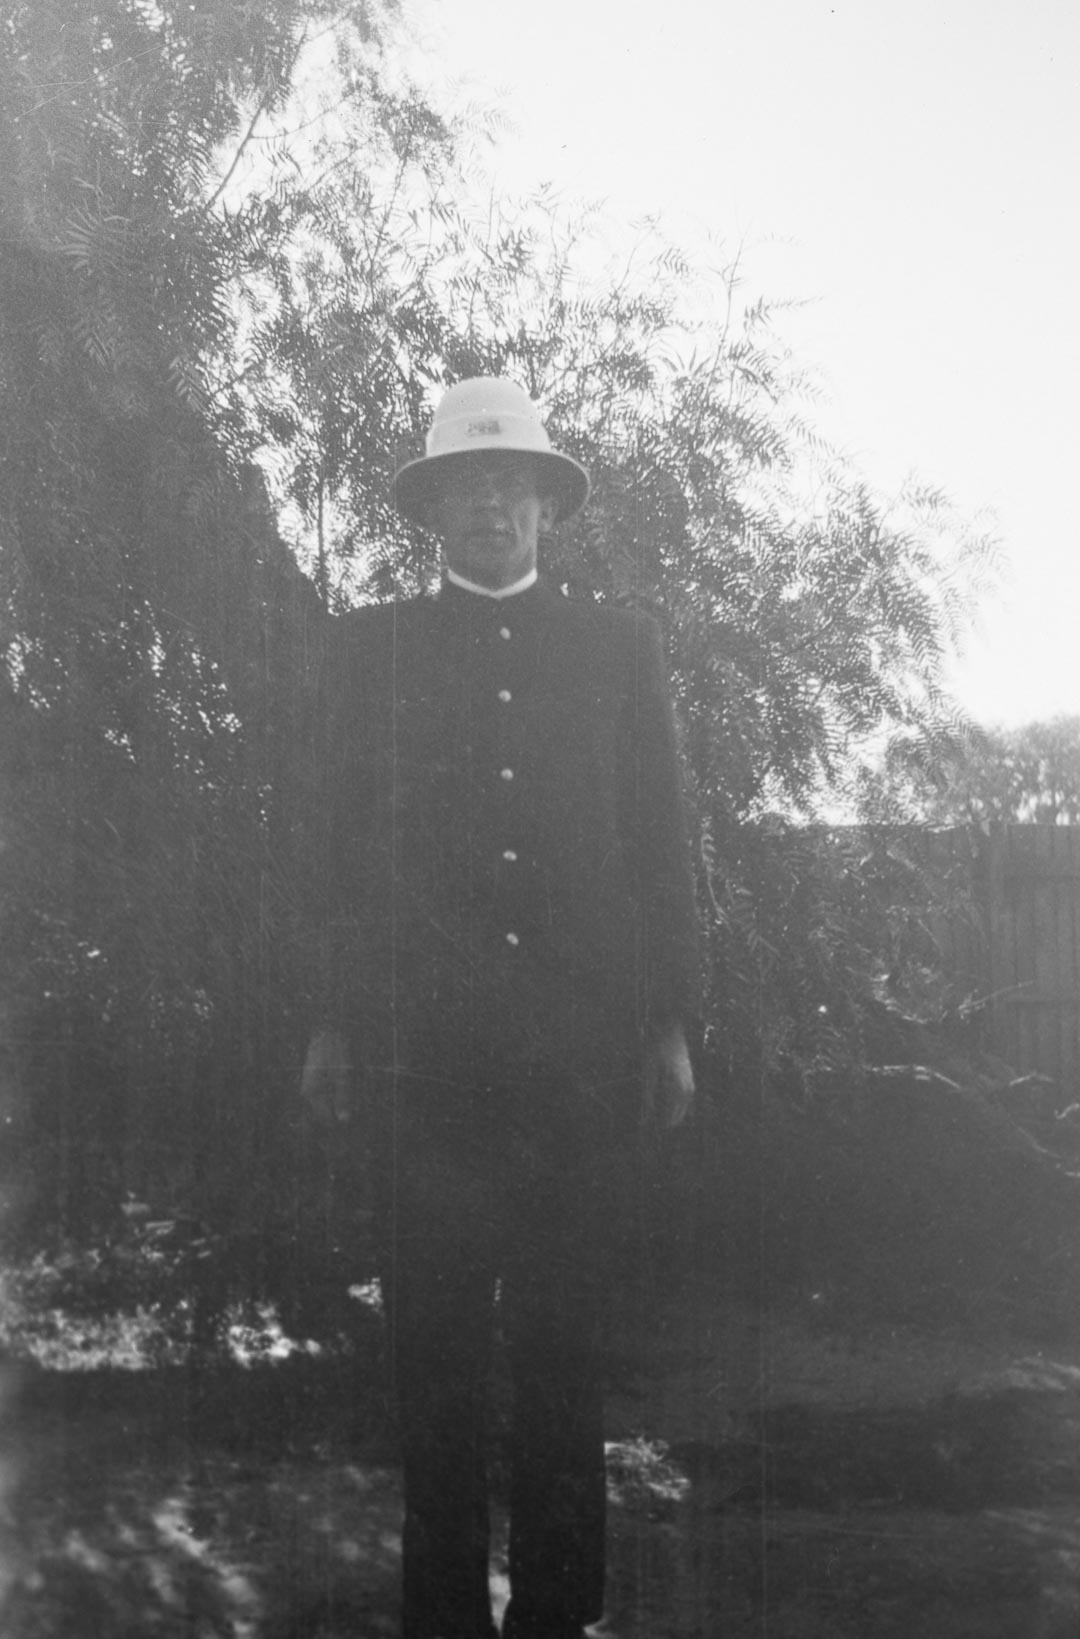 In March 1934, Jim Chester Draper was appointed to take charge of the police station at Woomelang in the Mallee (pictured), where he and Beatrice commenced their family life together.  In August 1939, he was appointed officer-in-charge of the Heyfield Police Station, one of the last mounted police stations in Victoria